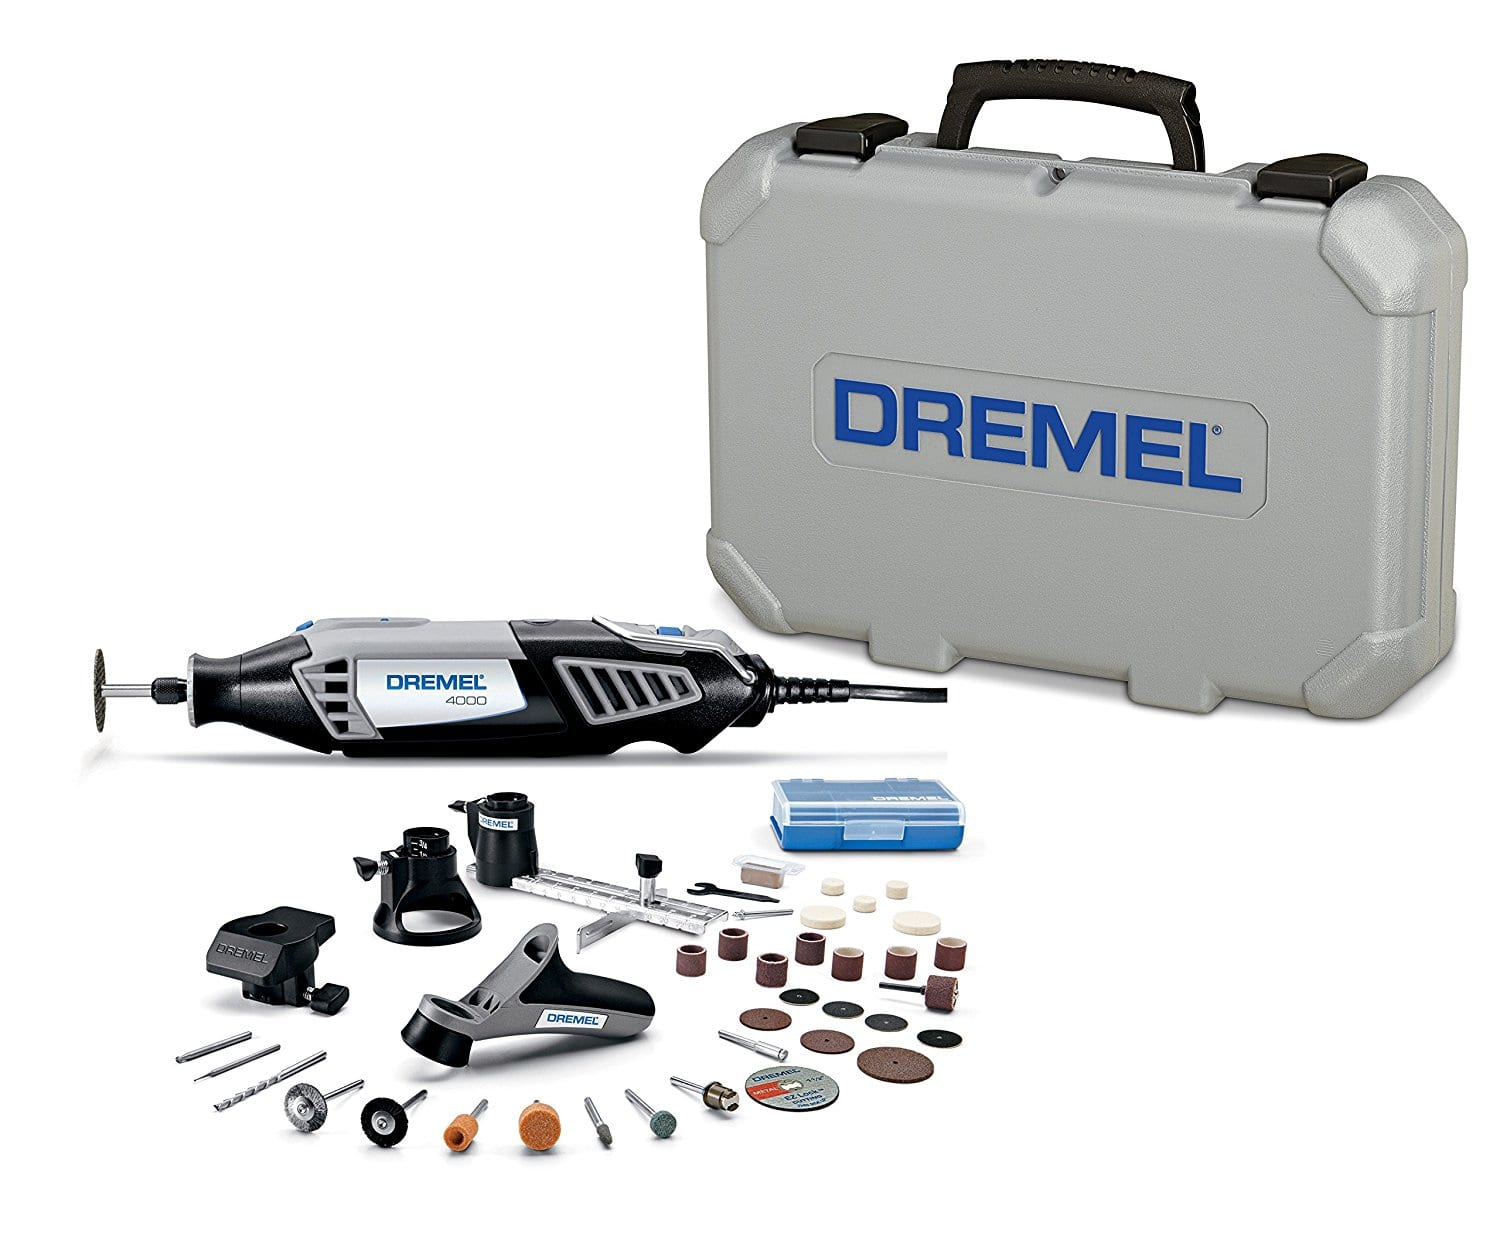 Dremel 4000-4/34 High Performance Rotary Tool Kit with Variable Speed Rotary Tool, 4 Attachments and 34 Accessories - before sales tax - free shipping $59